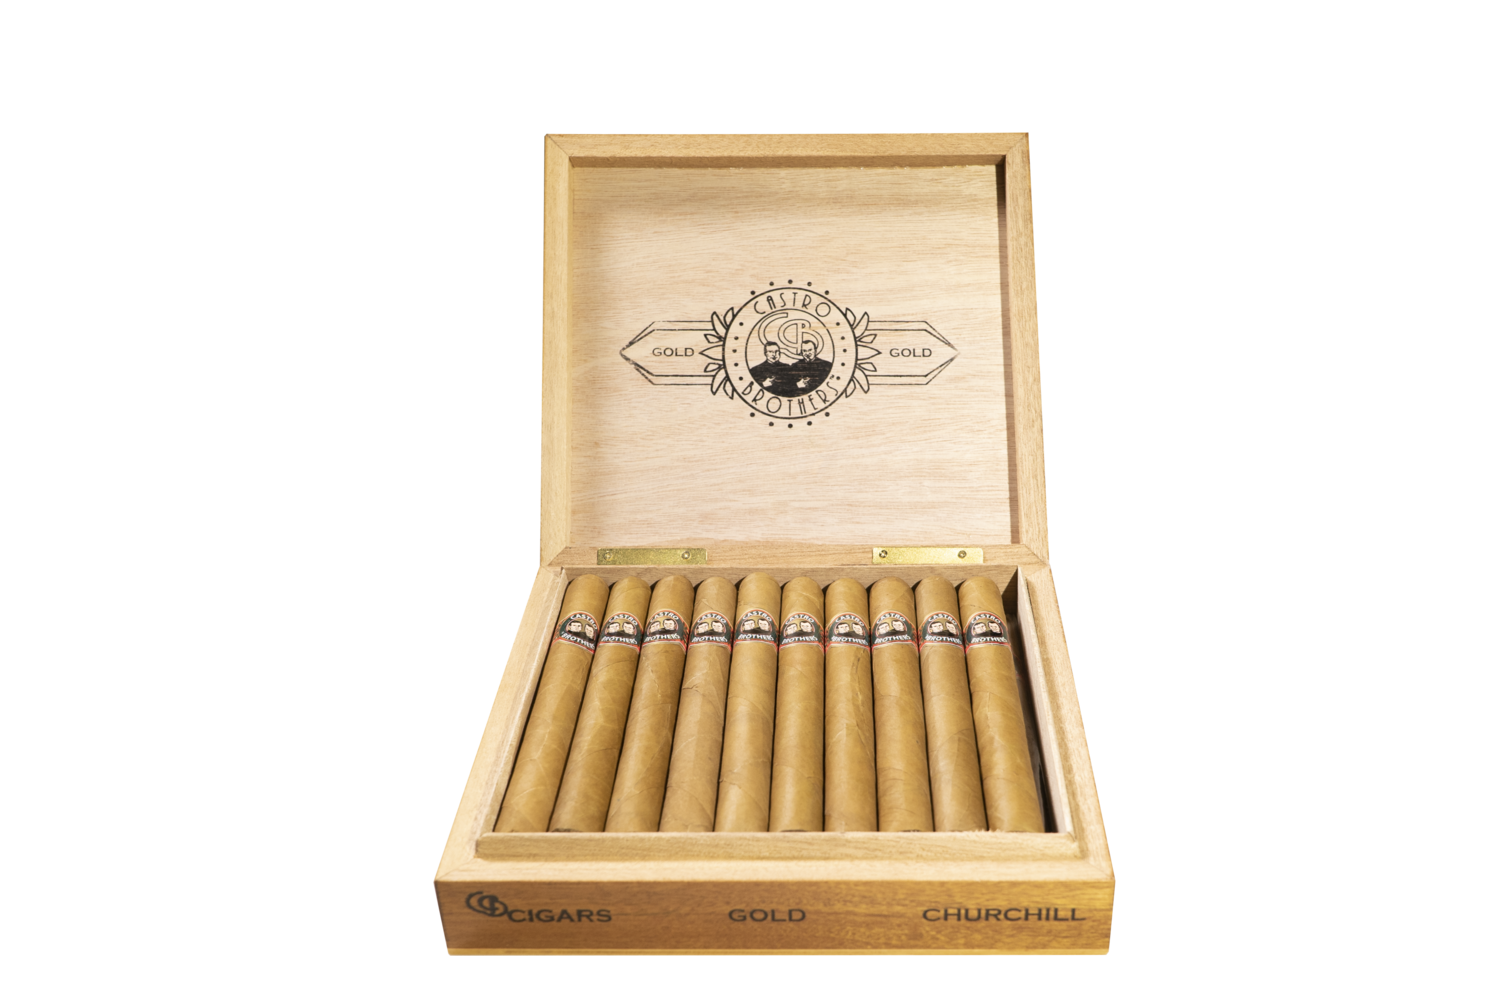 Castro Brothers Gold Robusto